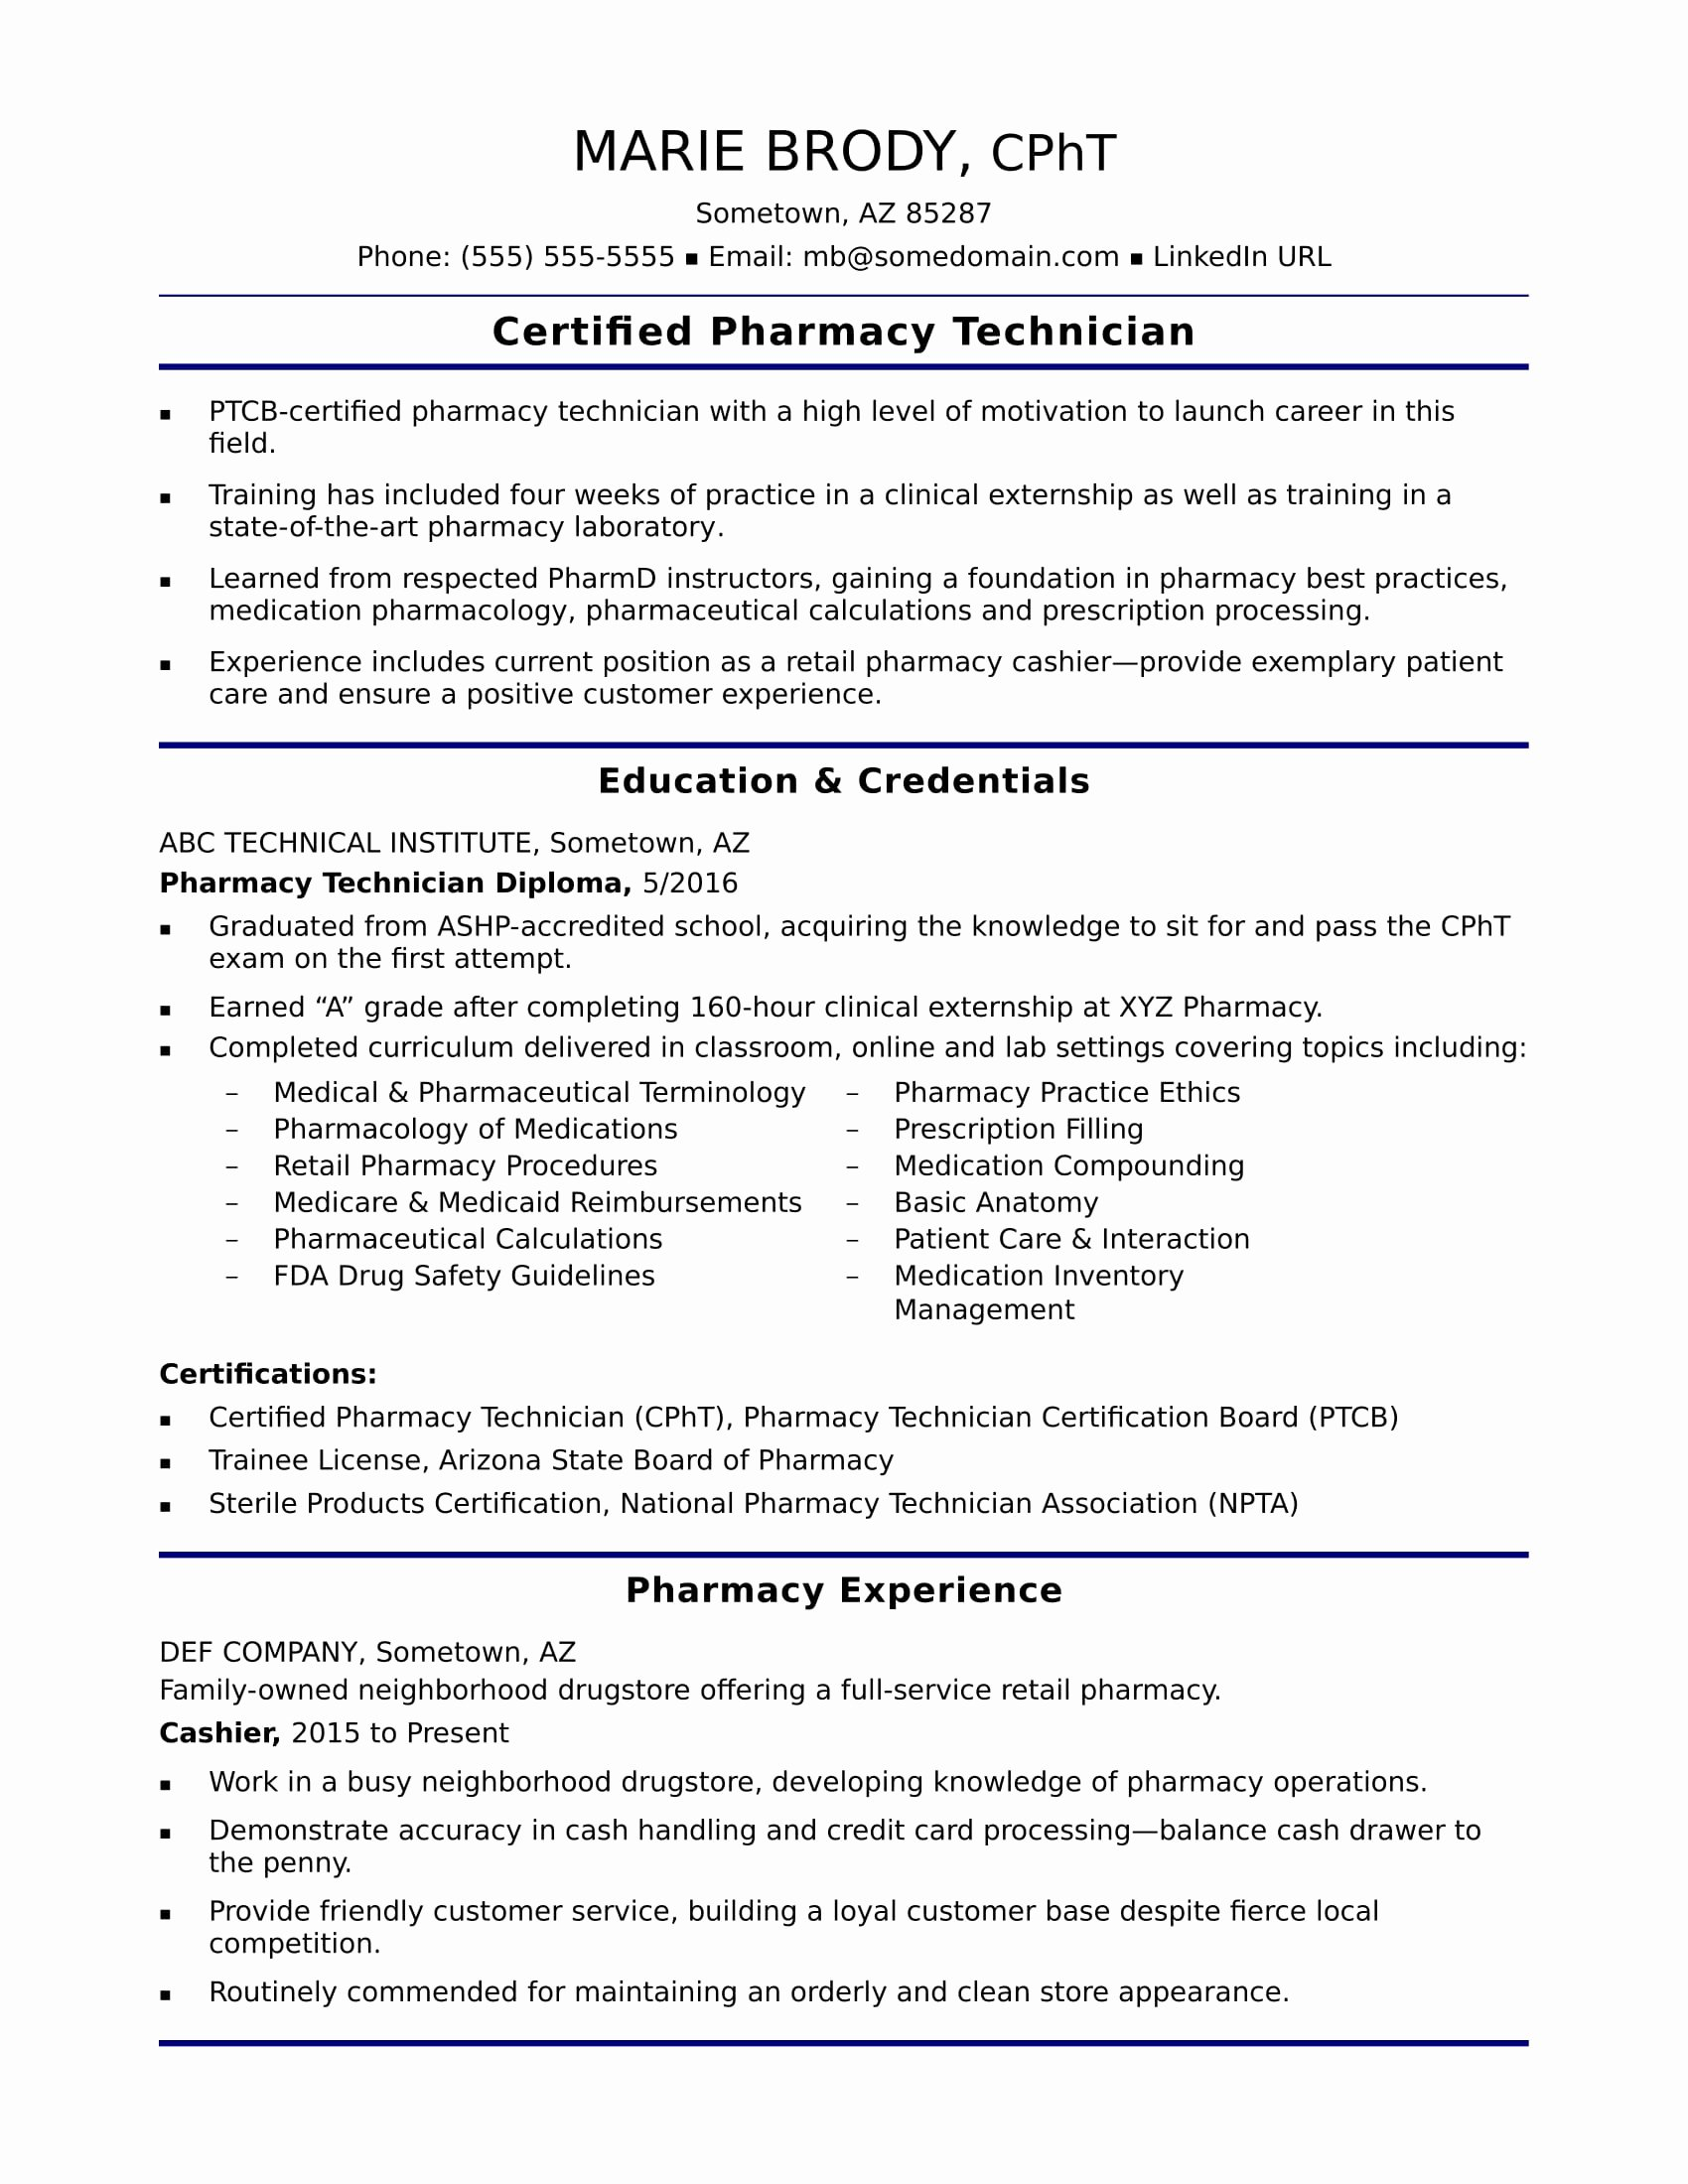 Pharmacy Technician Resume Template Unique Entry Level Pharmacy Technician Resume Sample